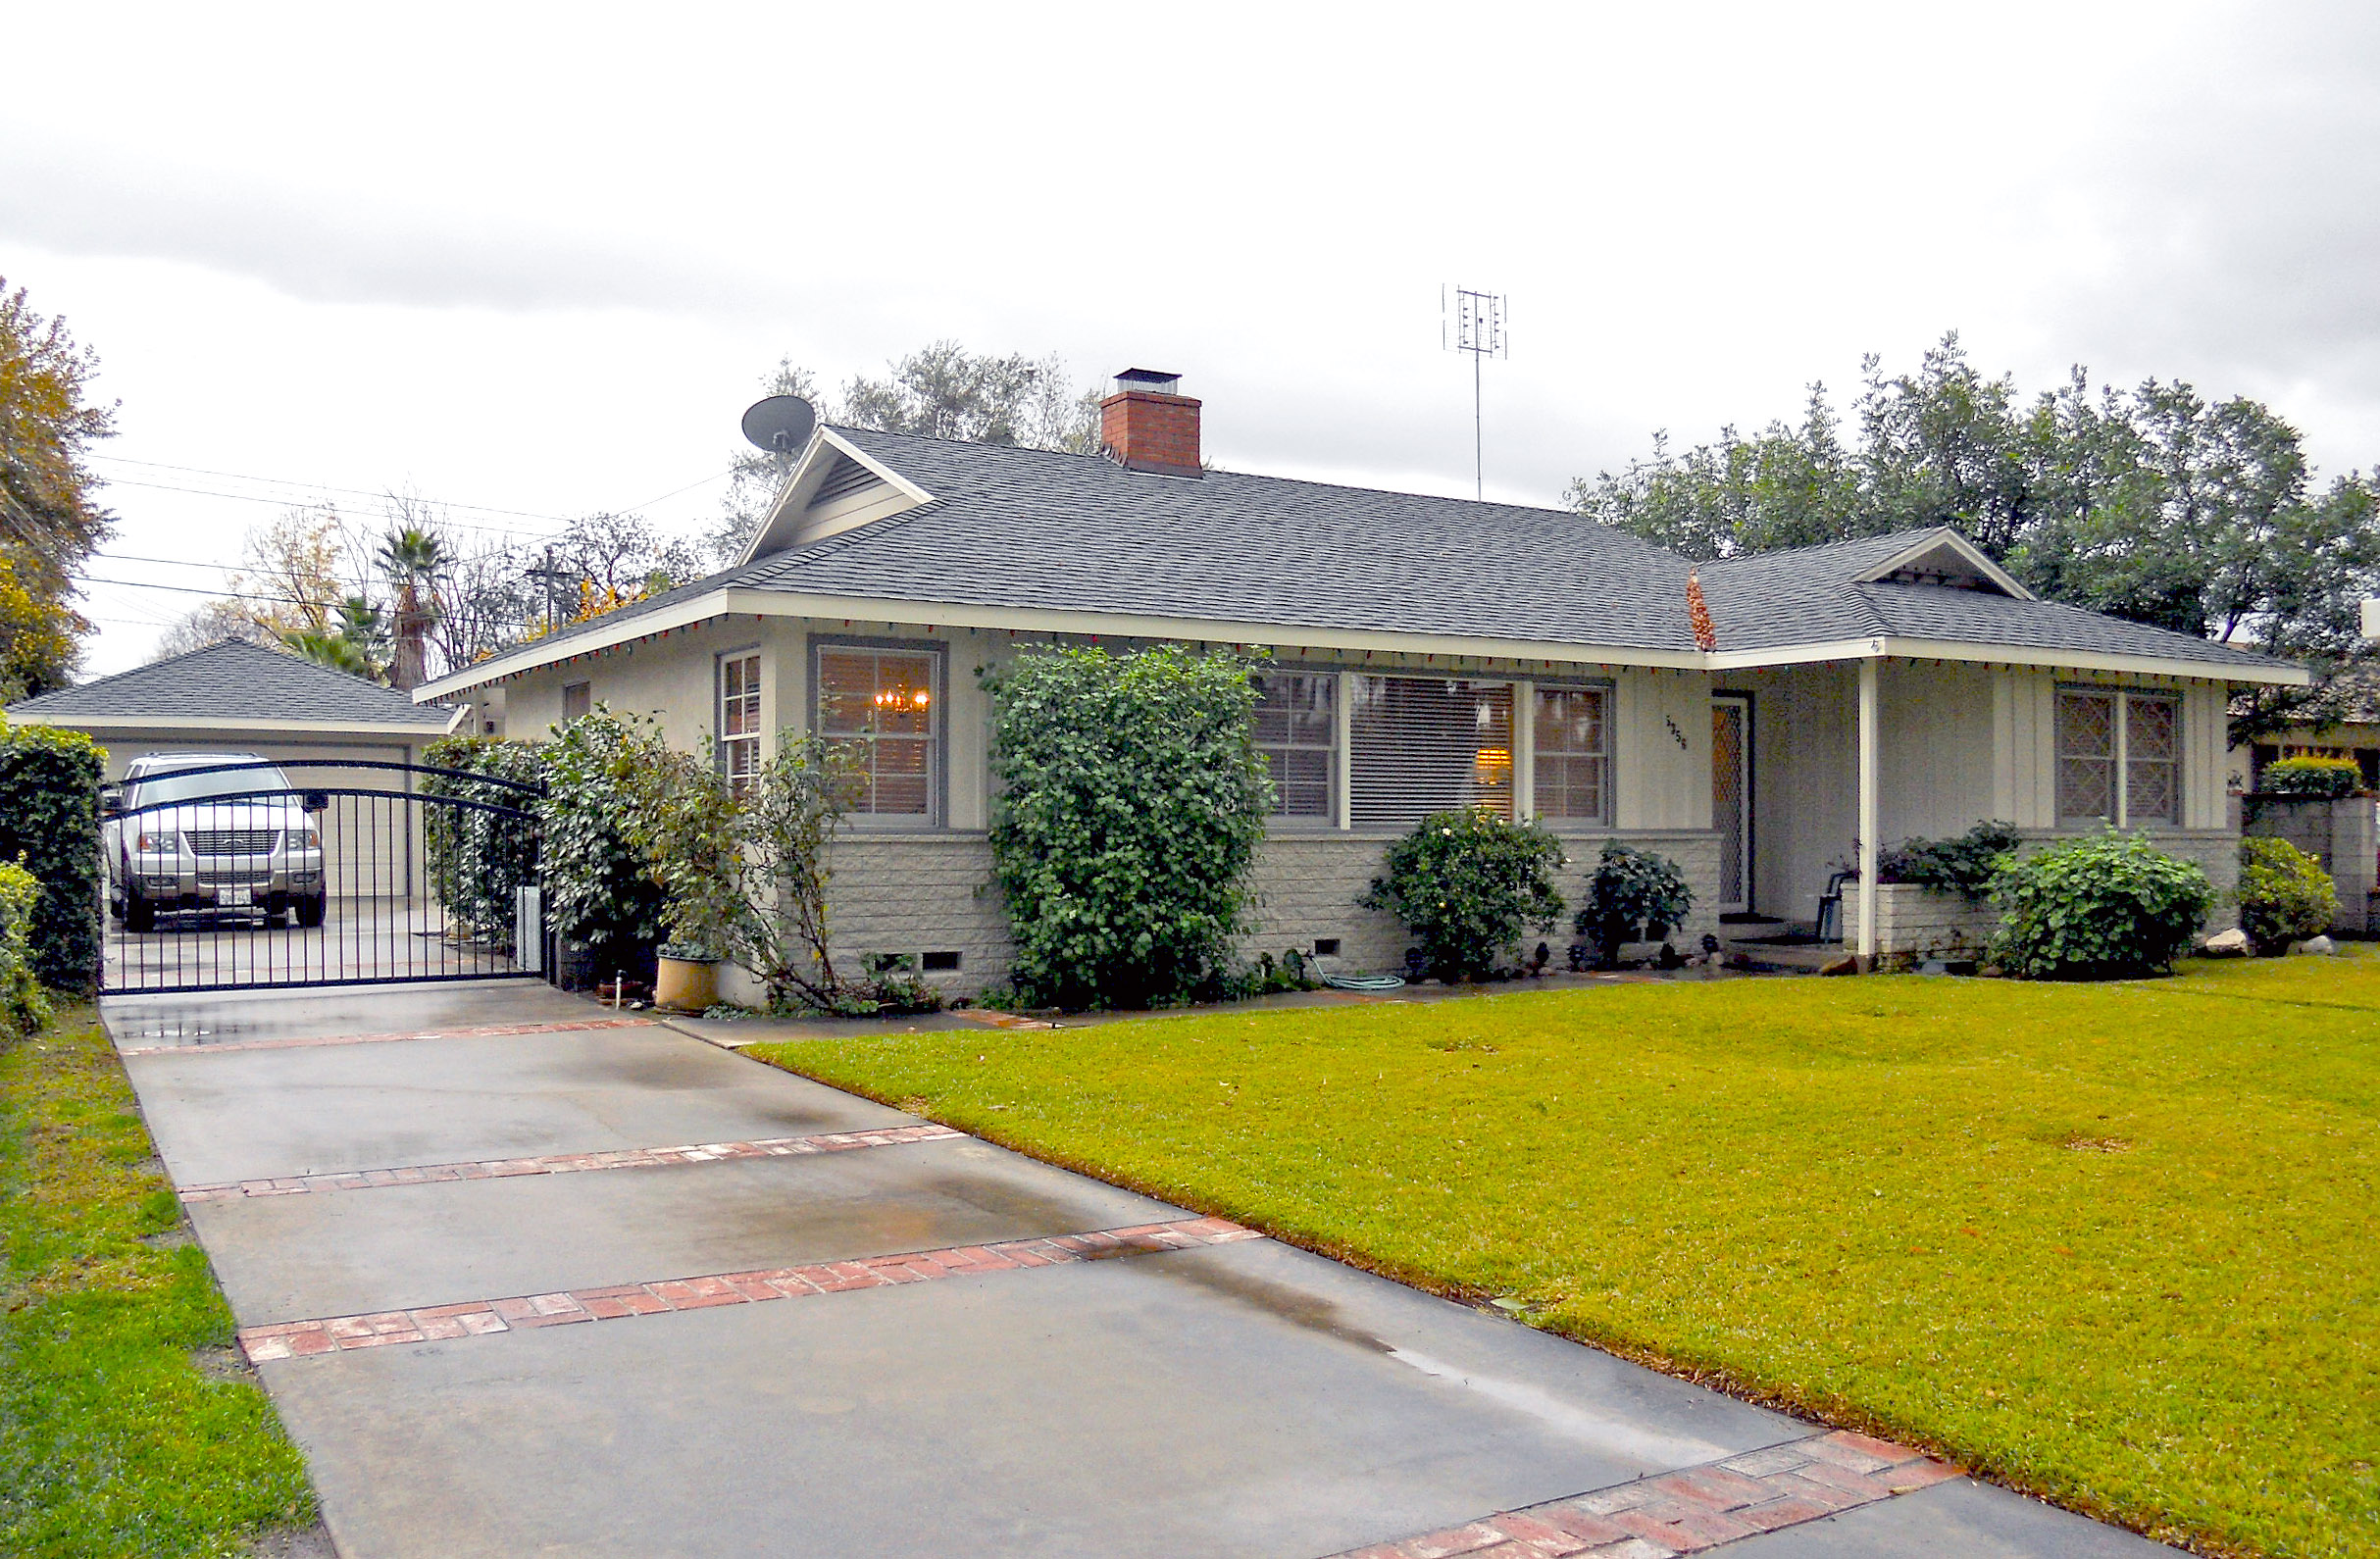 """5356 Kendall St., Riverside CA 92506 listed by """"The Sister Team"""""""